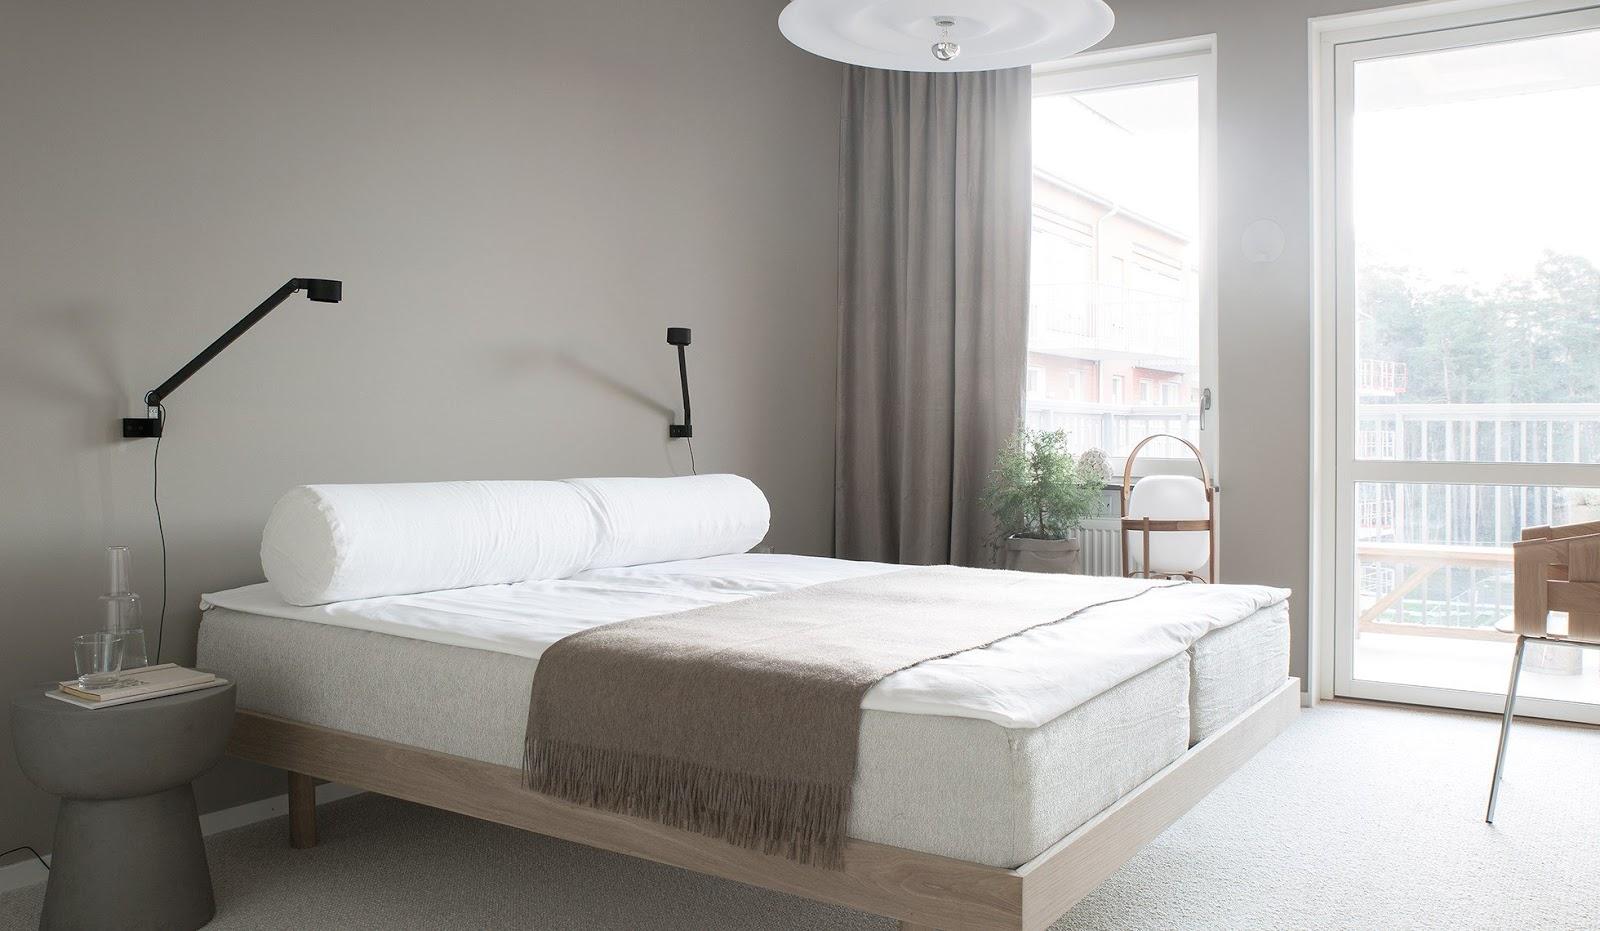 A peaceful bedroom in pale shades